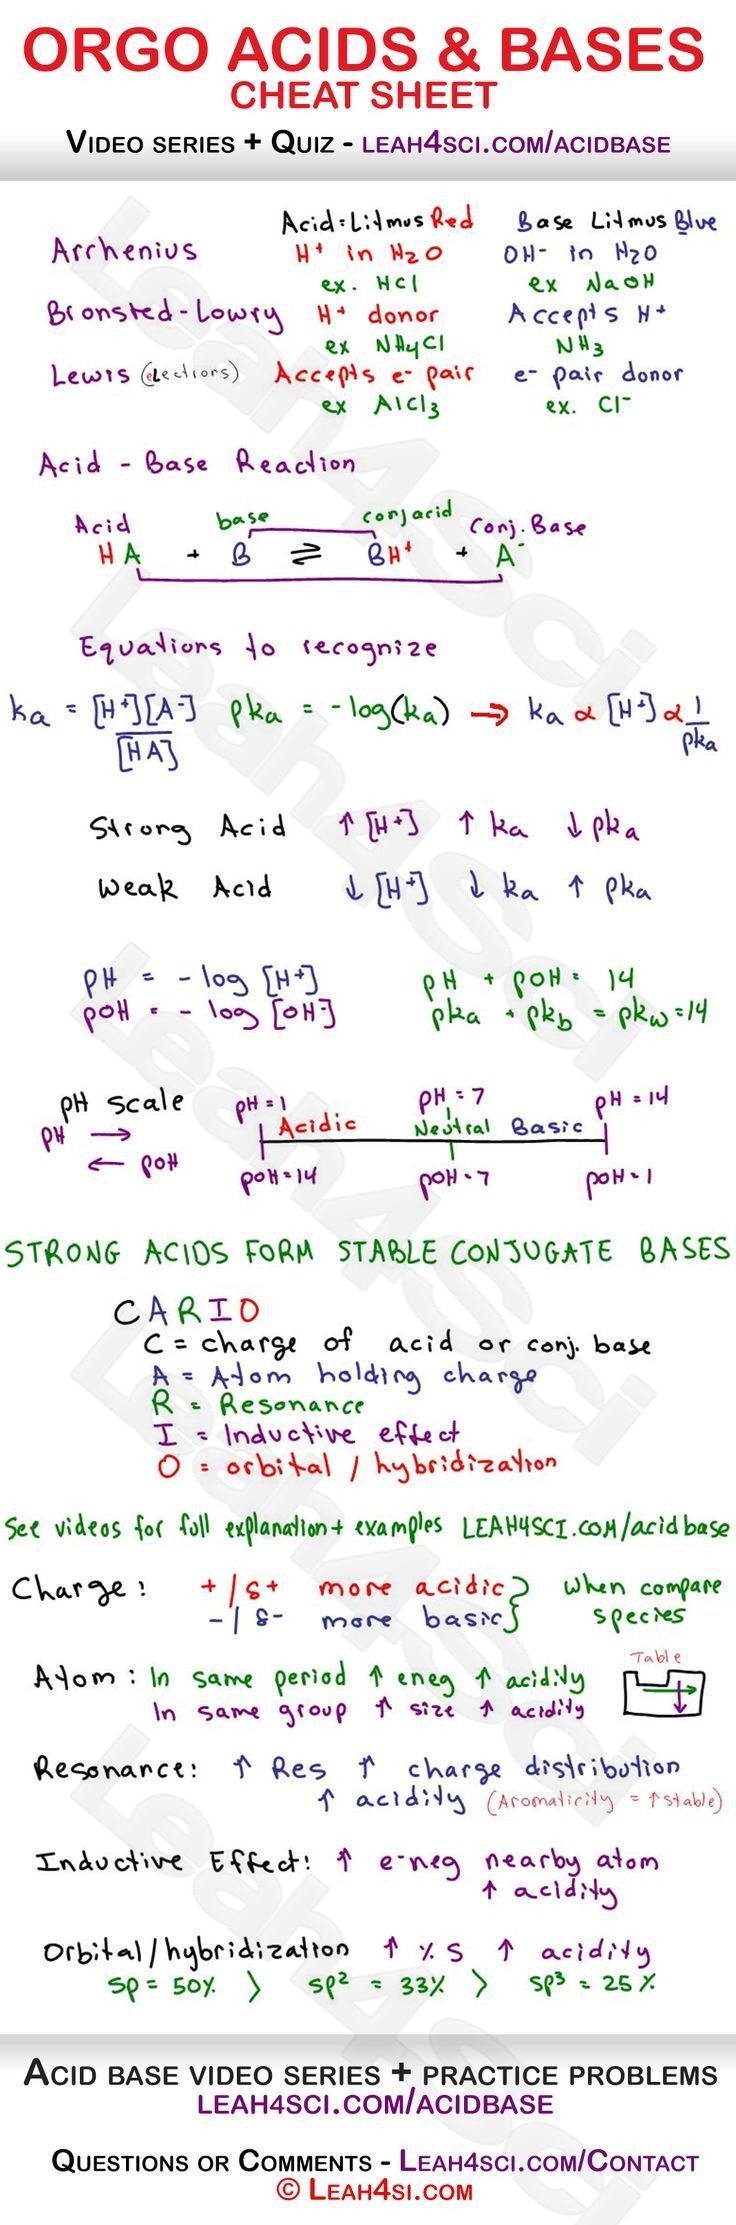 Acids and Bases in Organic Chemistry - Arrhenius, Bronsted-Lowry and Lewis acids and bases, reactions, acid/base strength, pH to pKa relationship and more  #premed #organic #chemistry #ochem #orgo  #reaction #reactions #notes #premed #mcat #study #resources